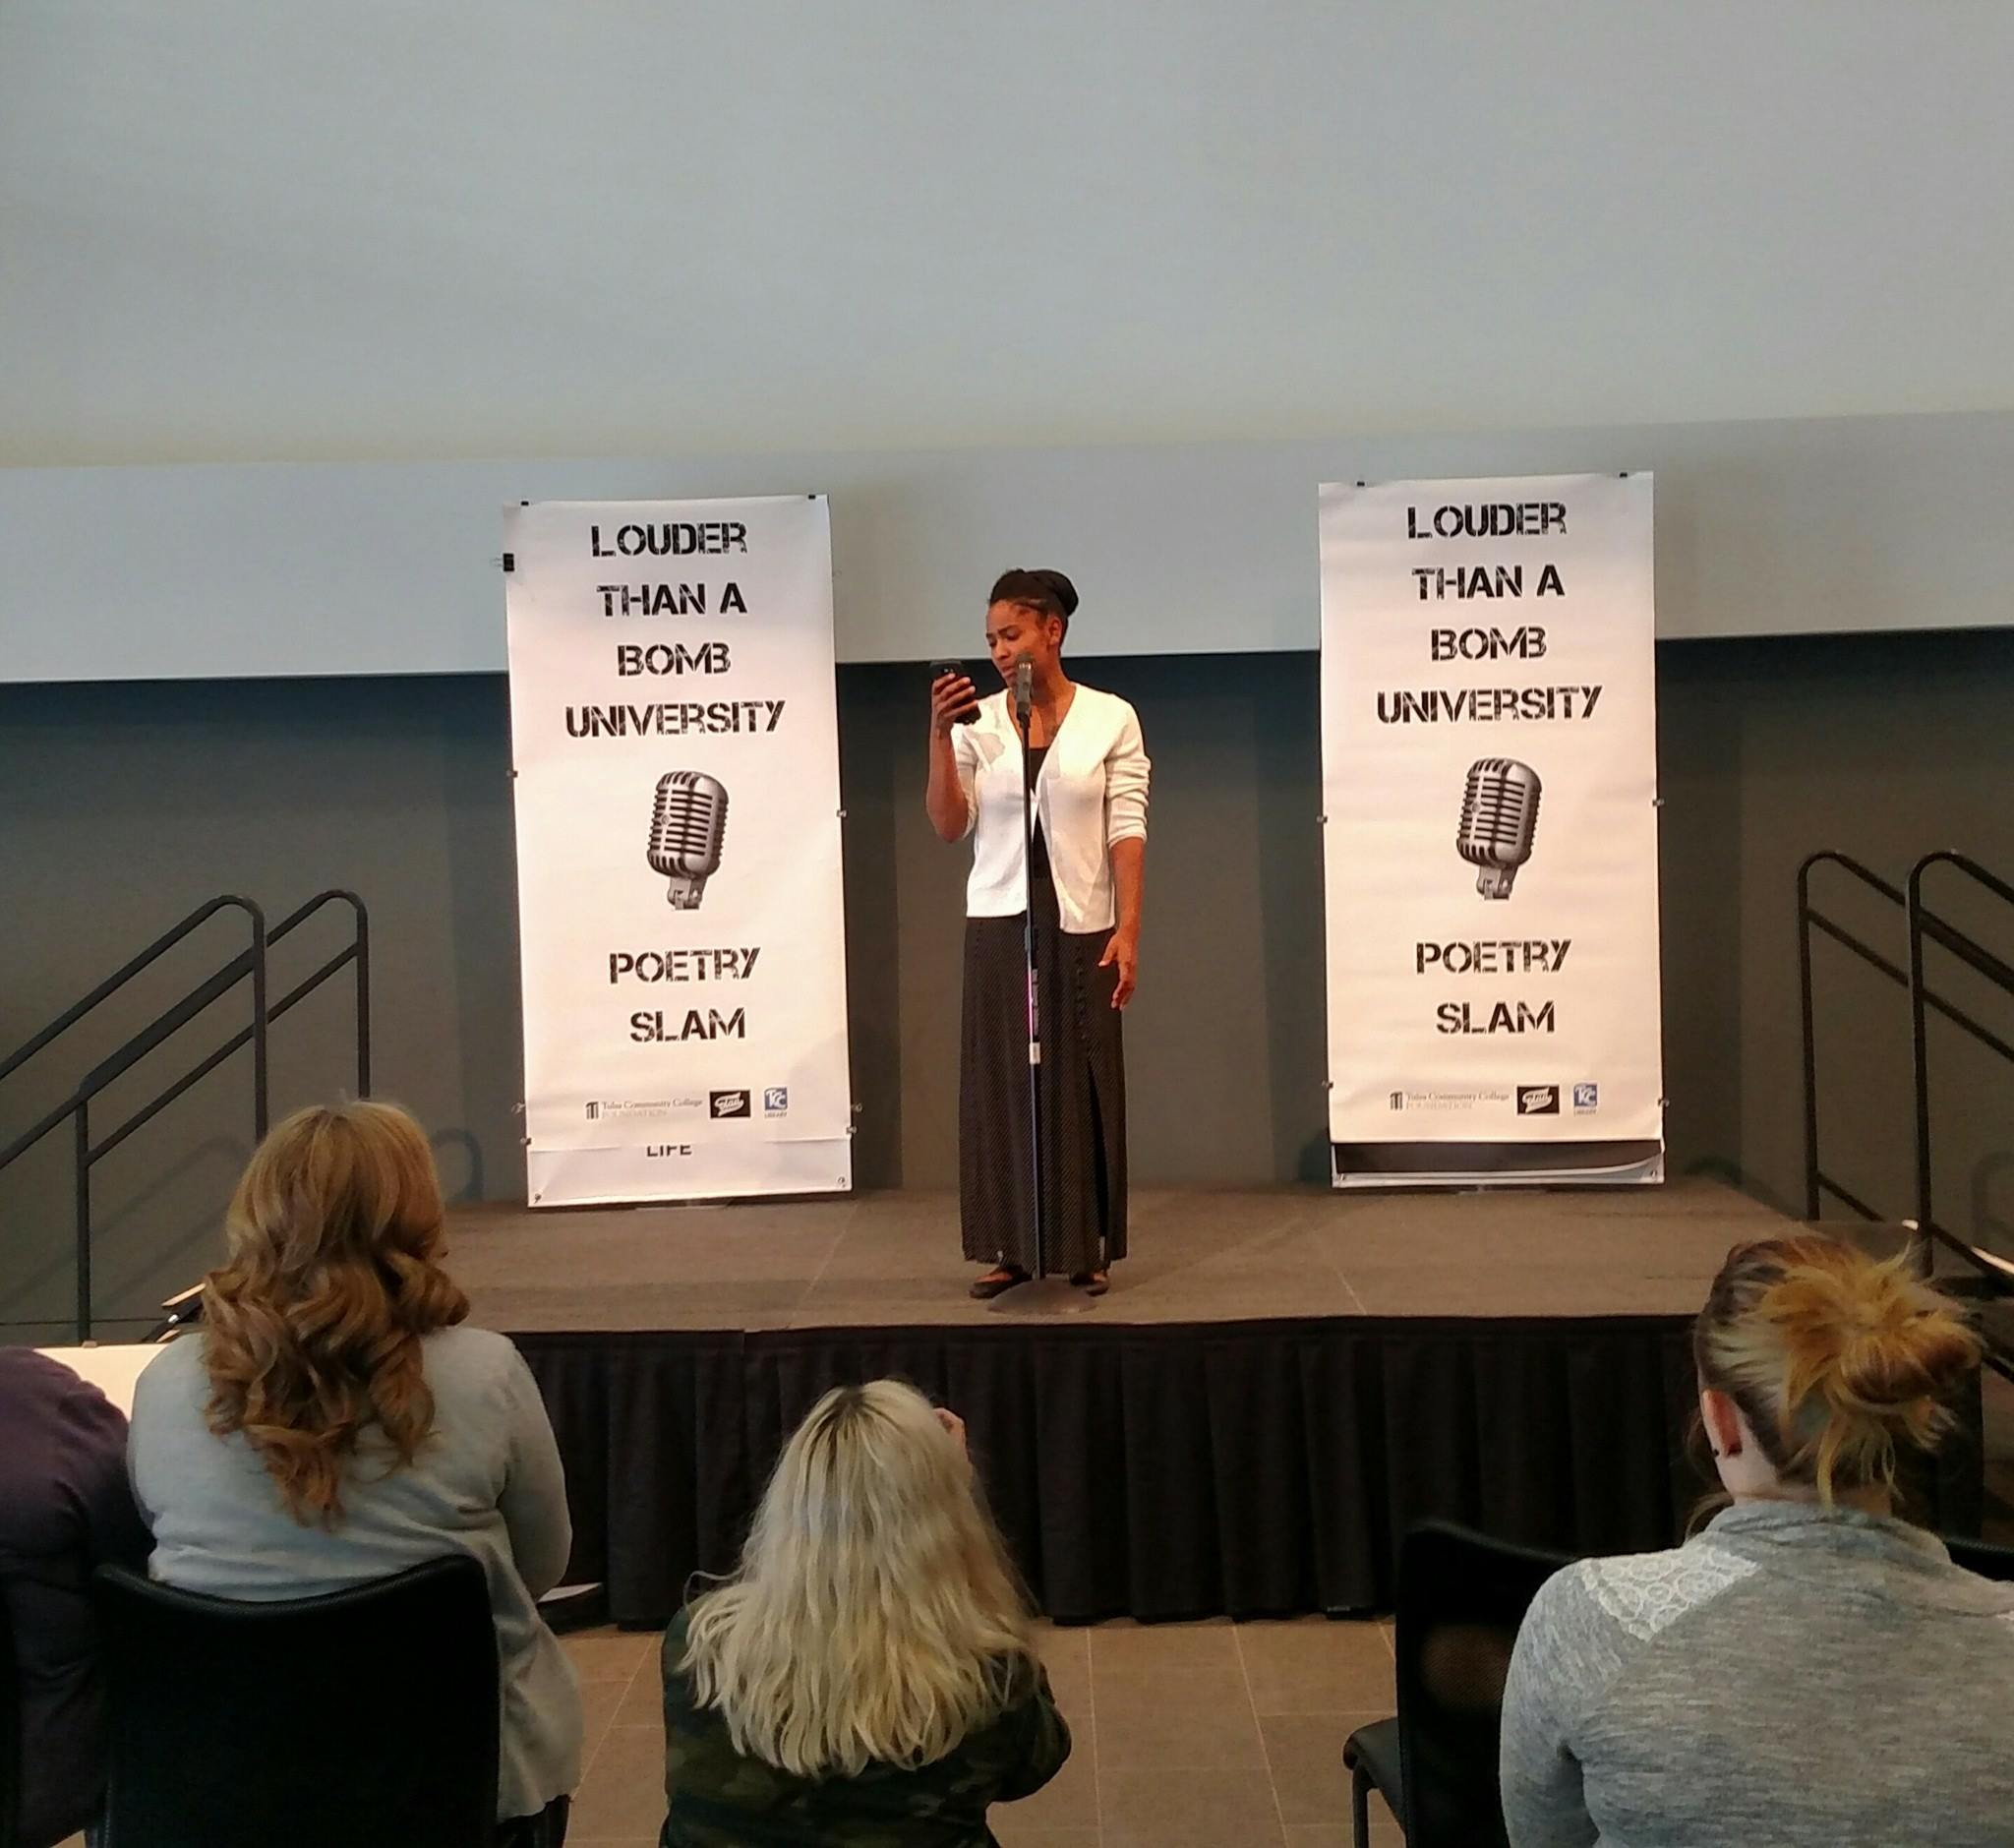 photo of a Student performing original poetry at the poetry slam event, Louder than a bomb university